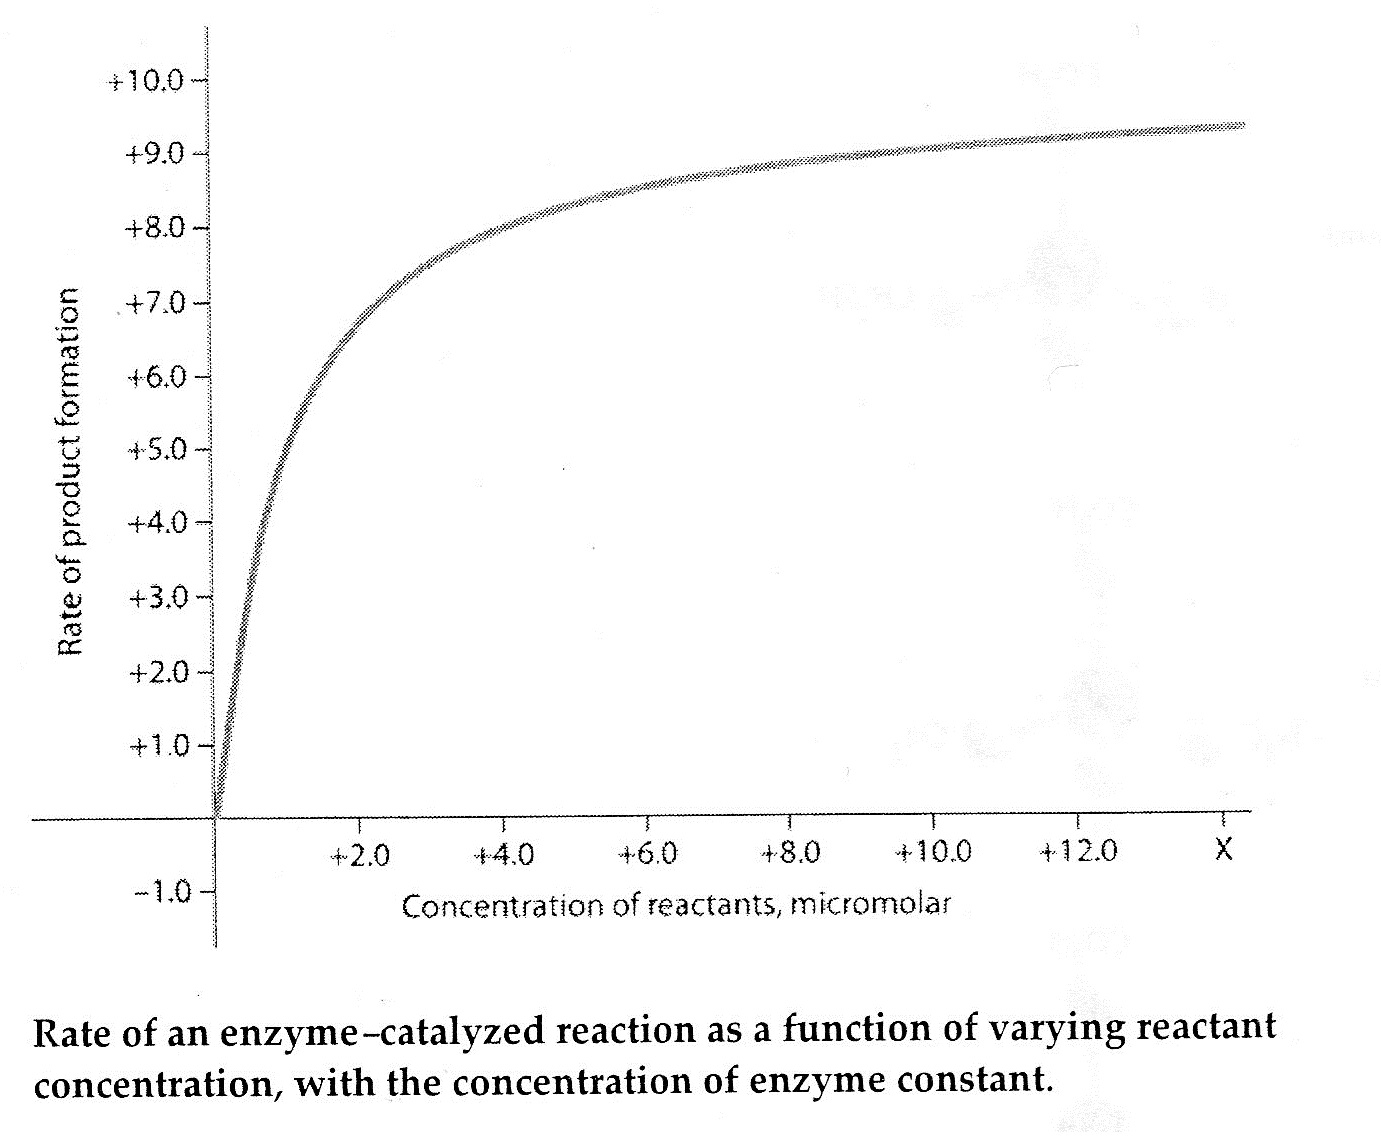 In the figure, why does the reaction rate plateau at higher reactant concentrations?